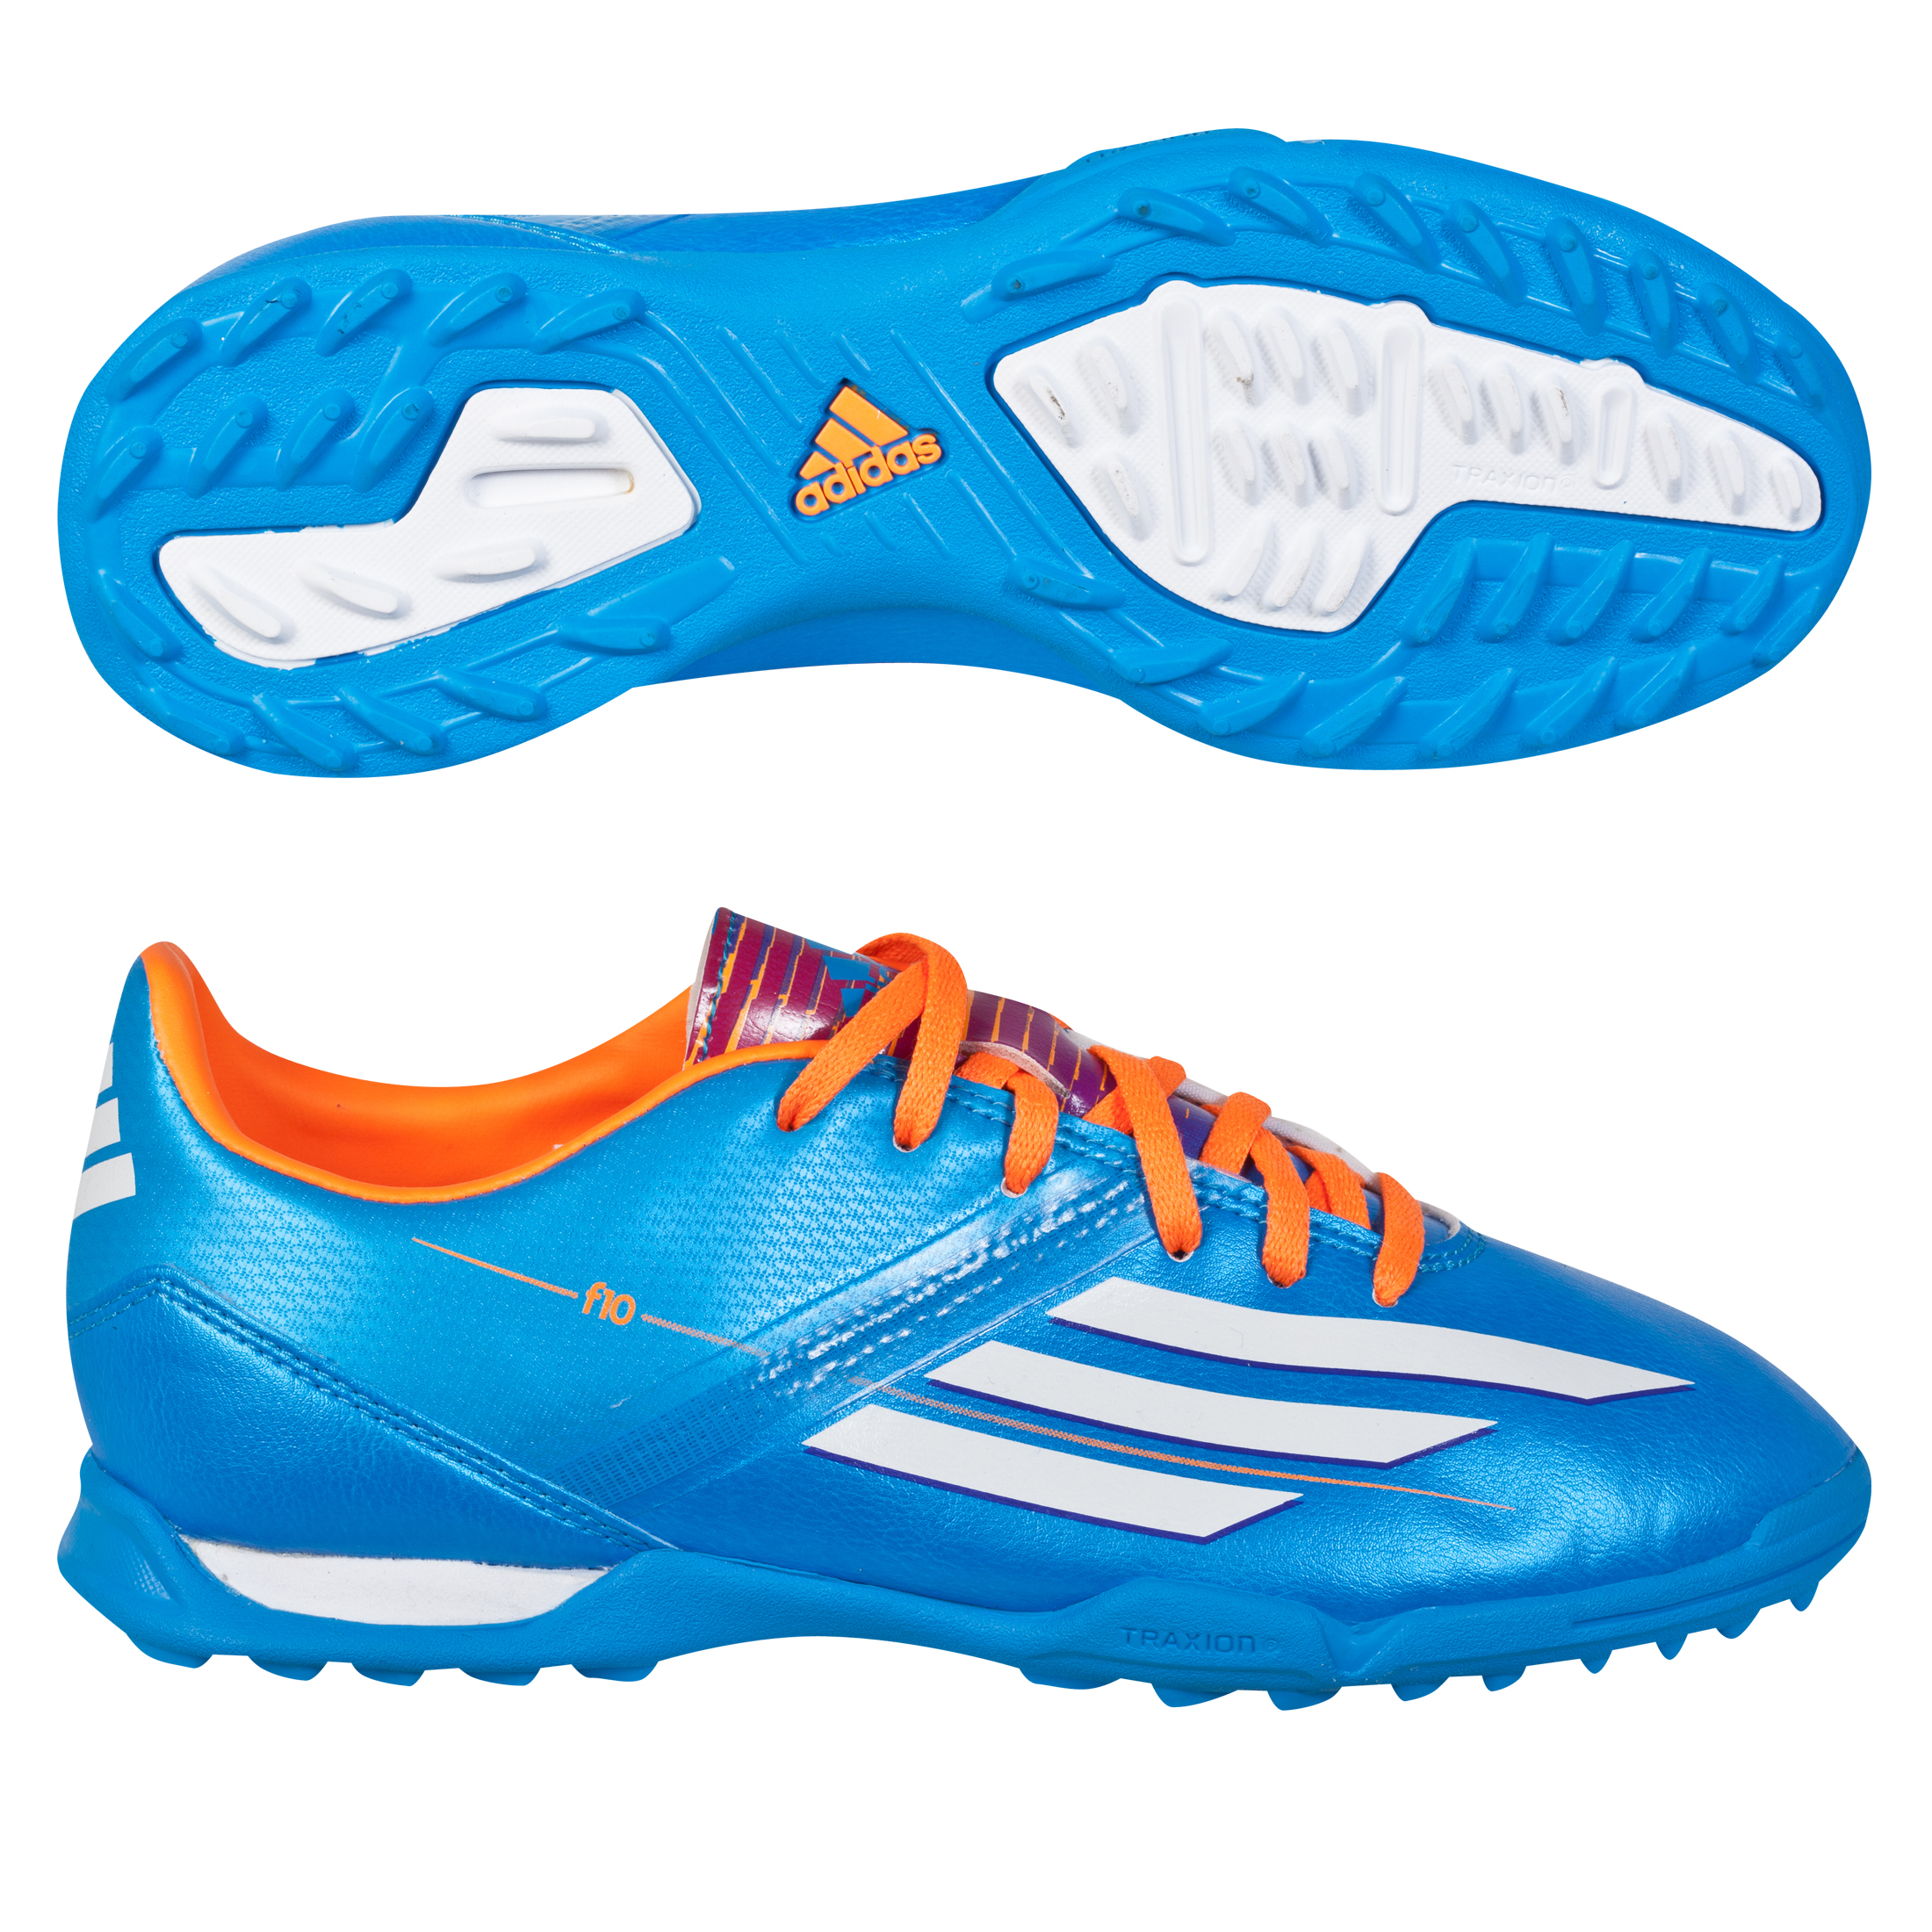 Adidas F10 TRX Astroturf Trainers - Kids Blue